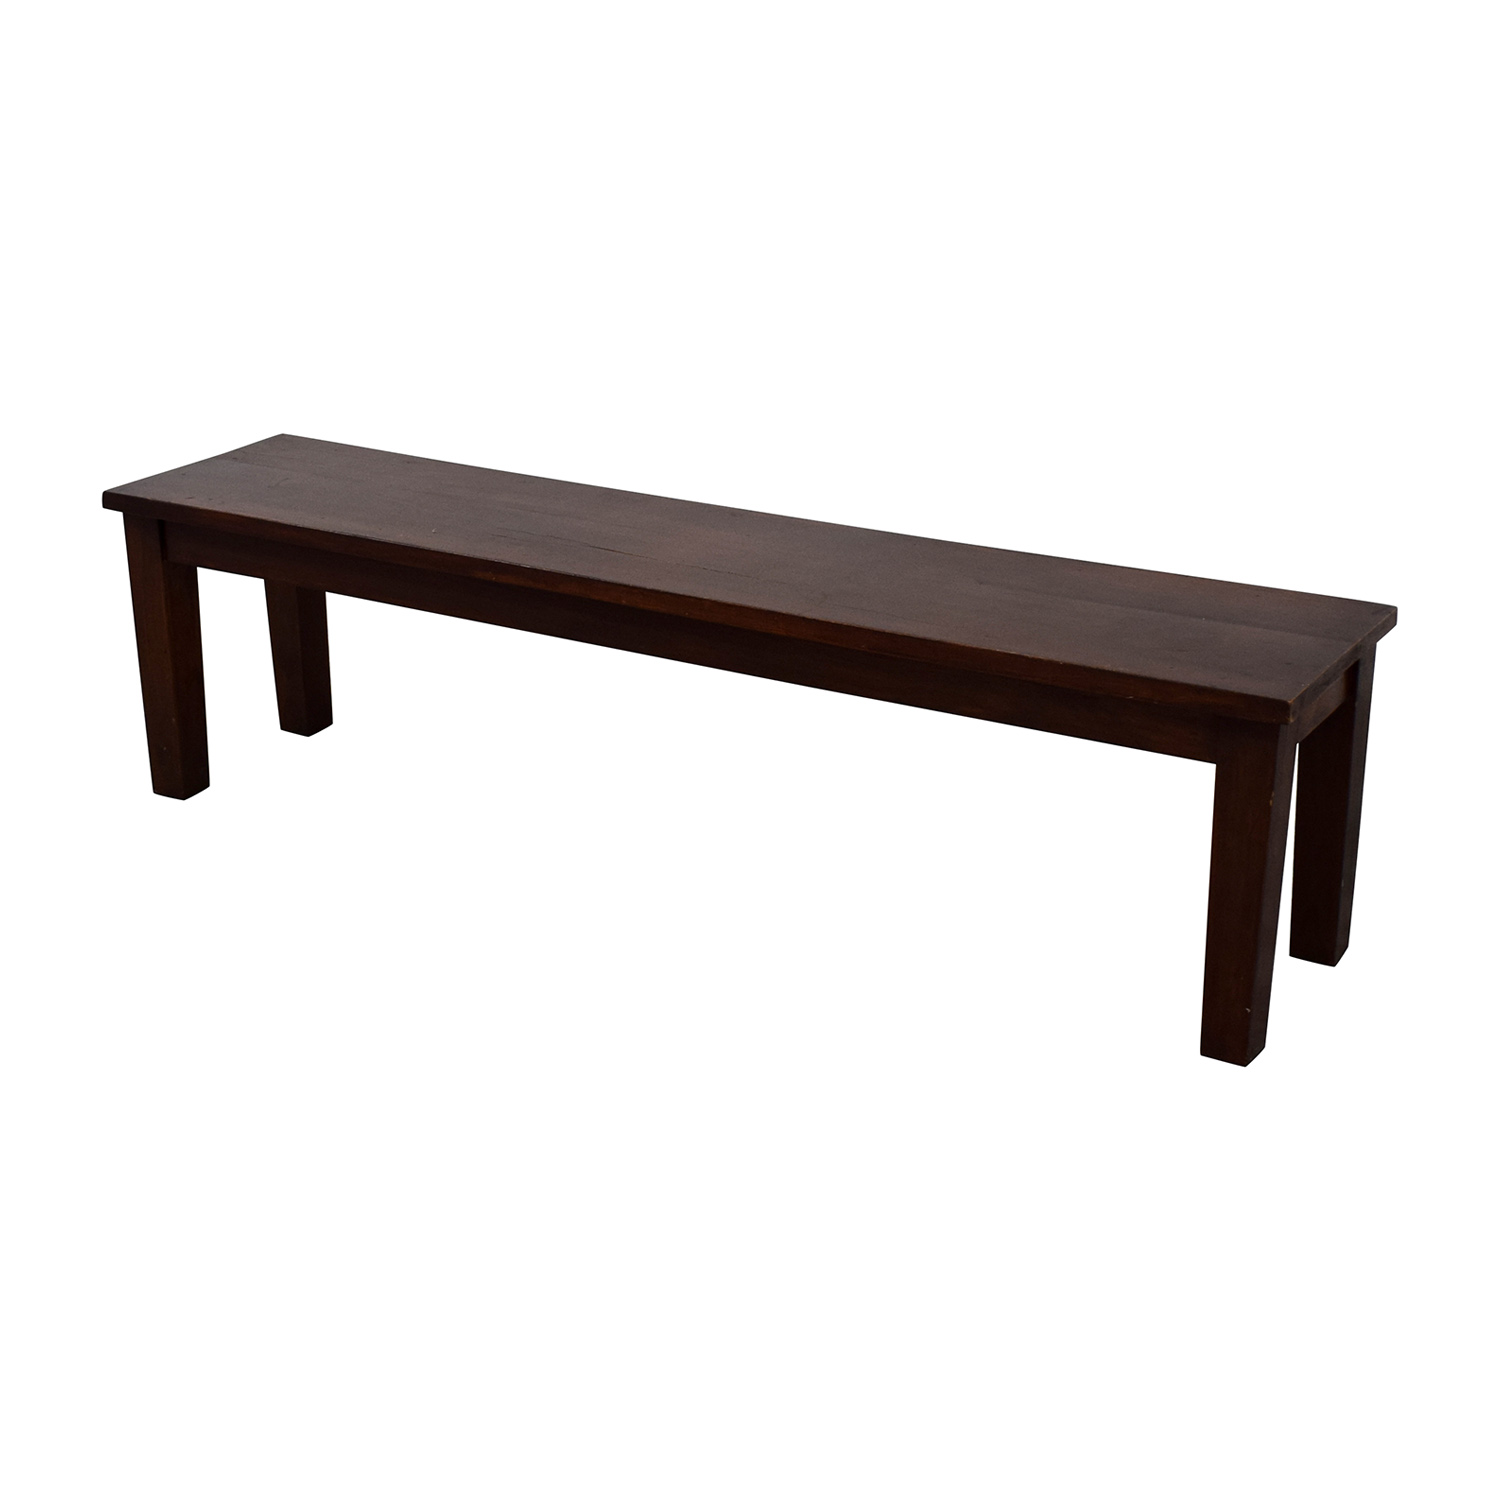 Crate & Barrel Entry Bench sale